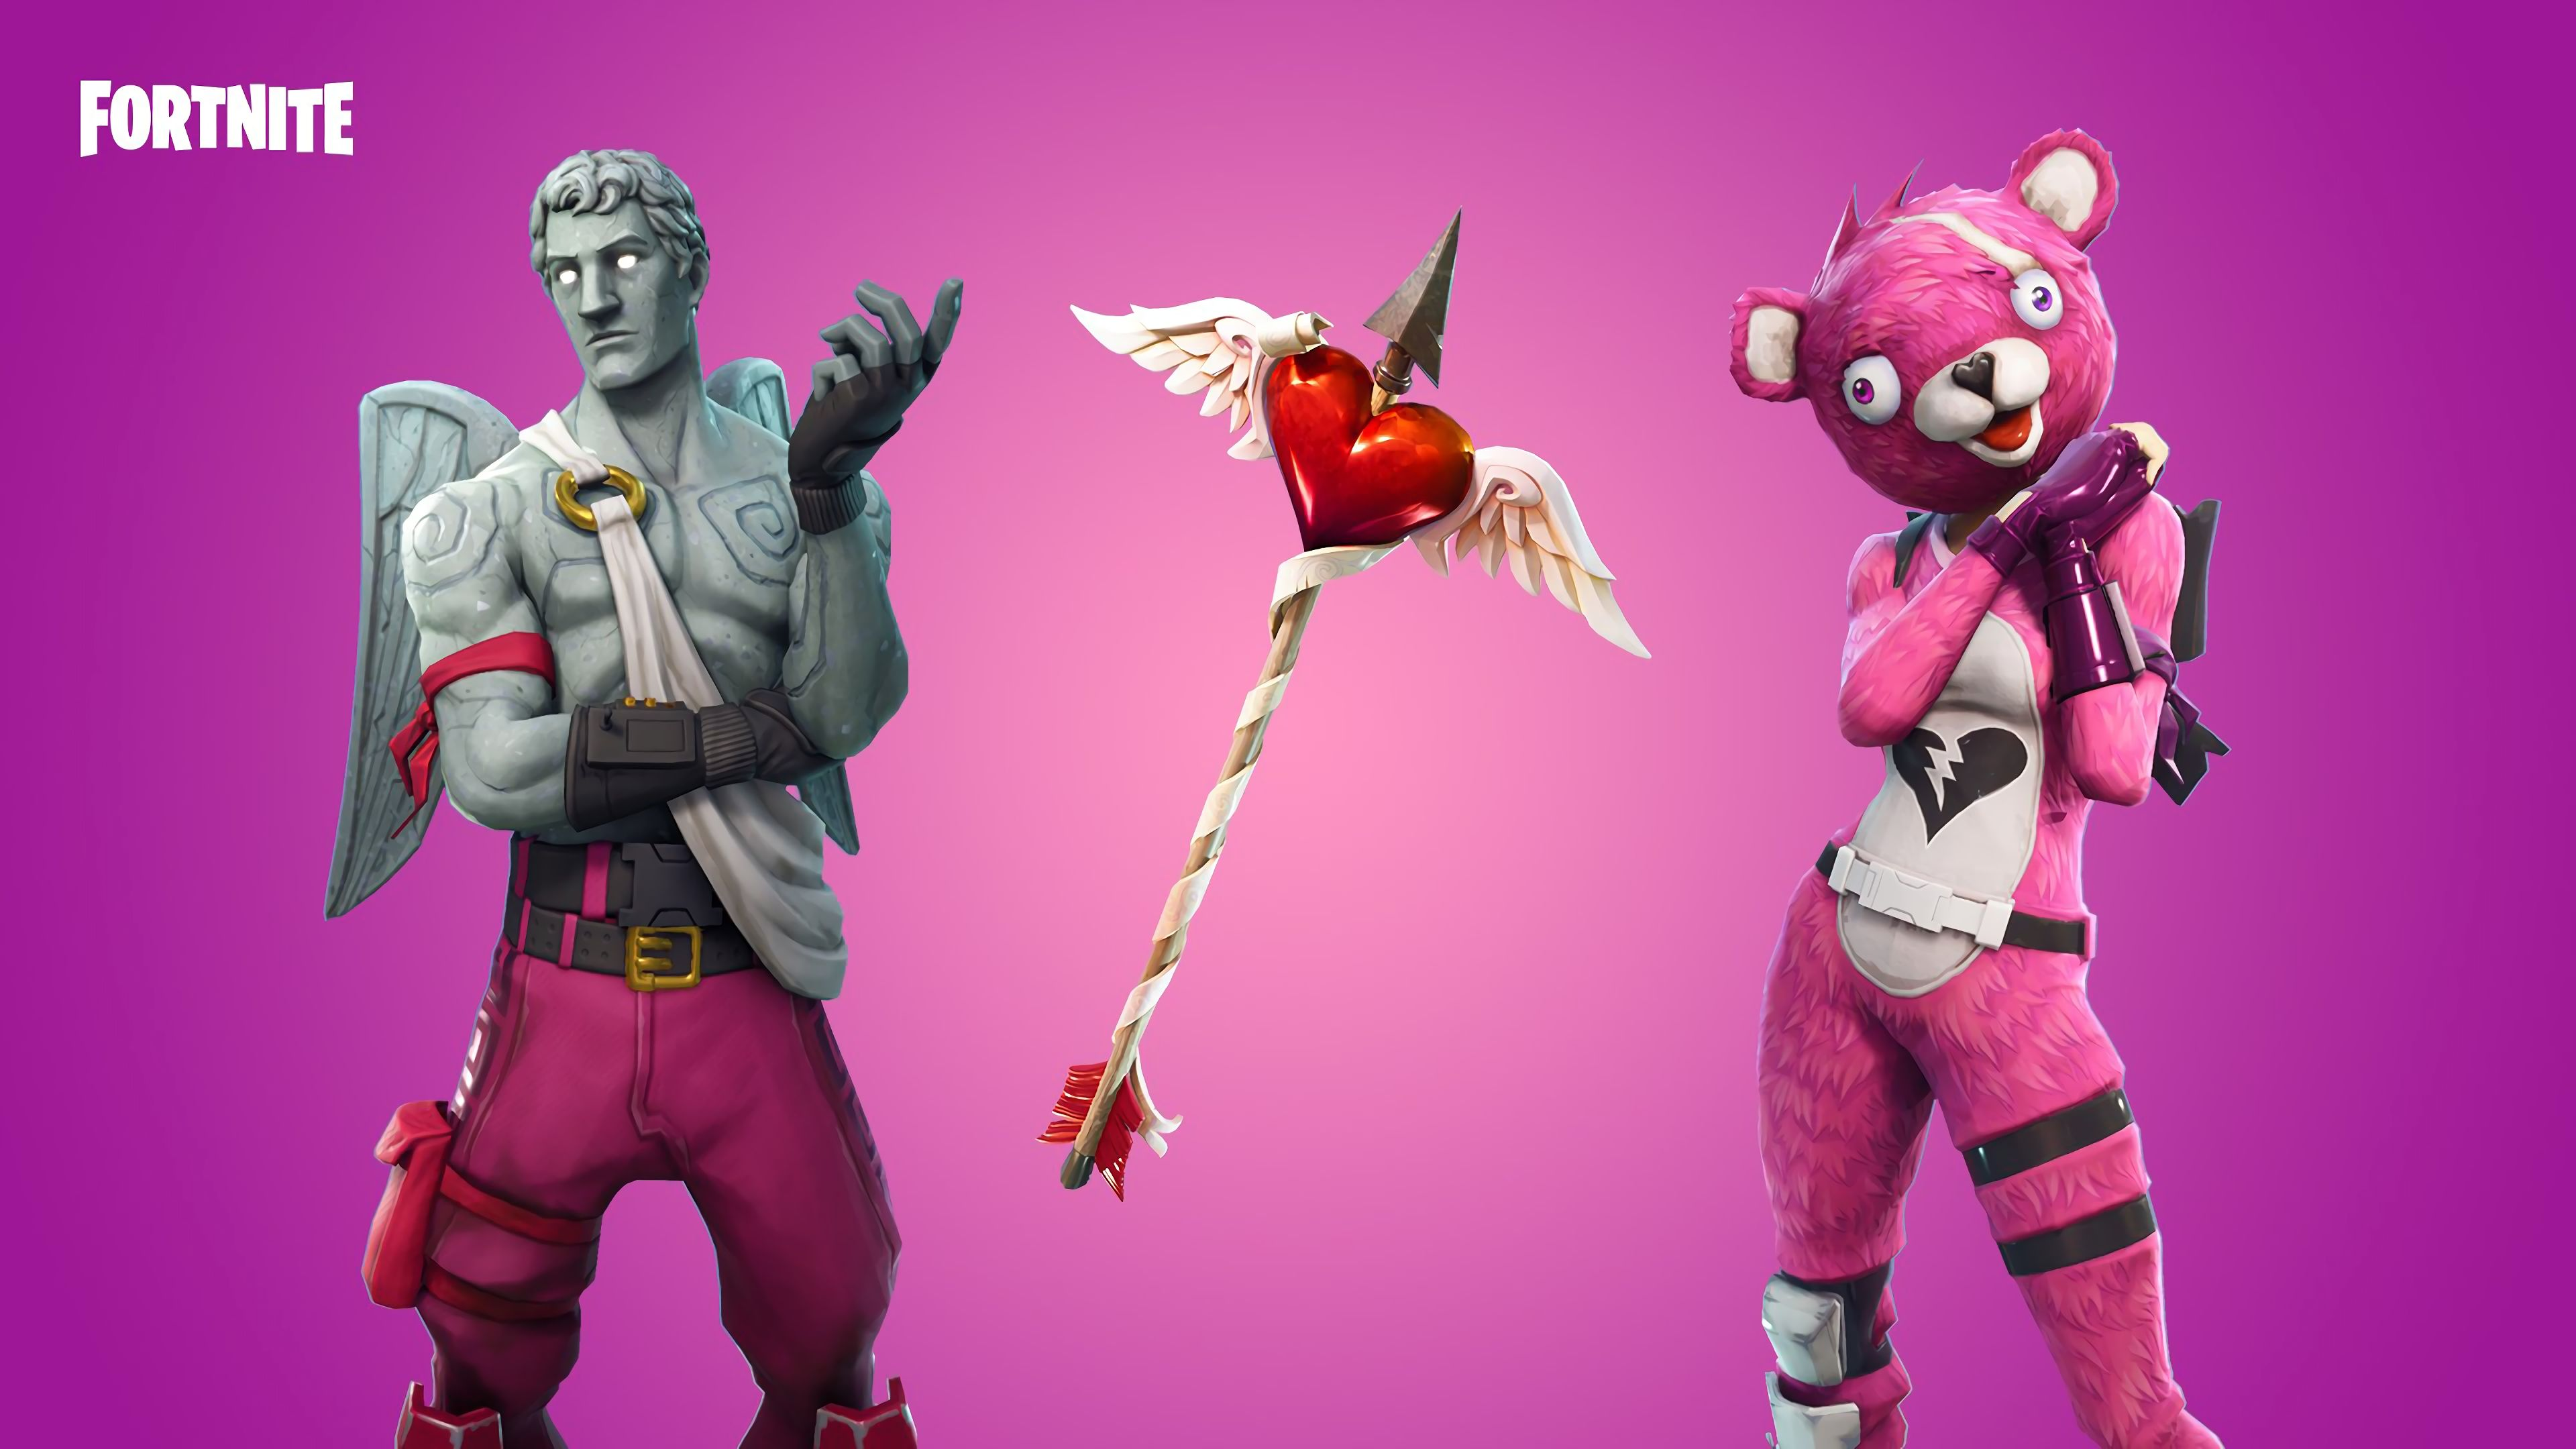 Love Ranger 4k 8k Hd Wallpaper Fortnite Cizimler